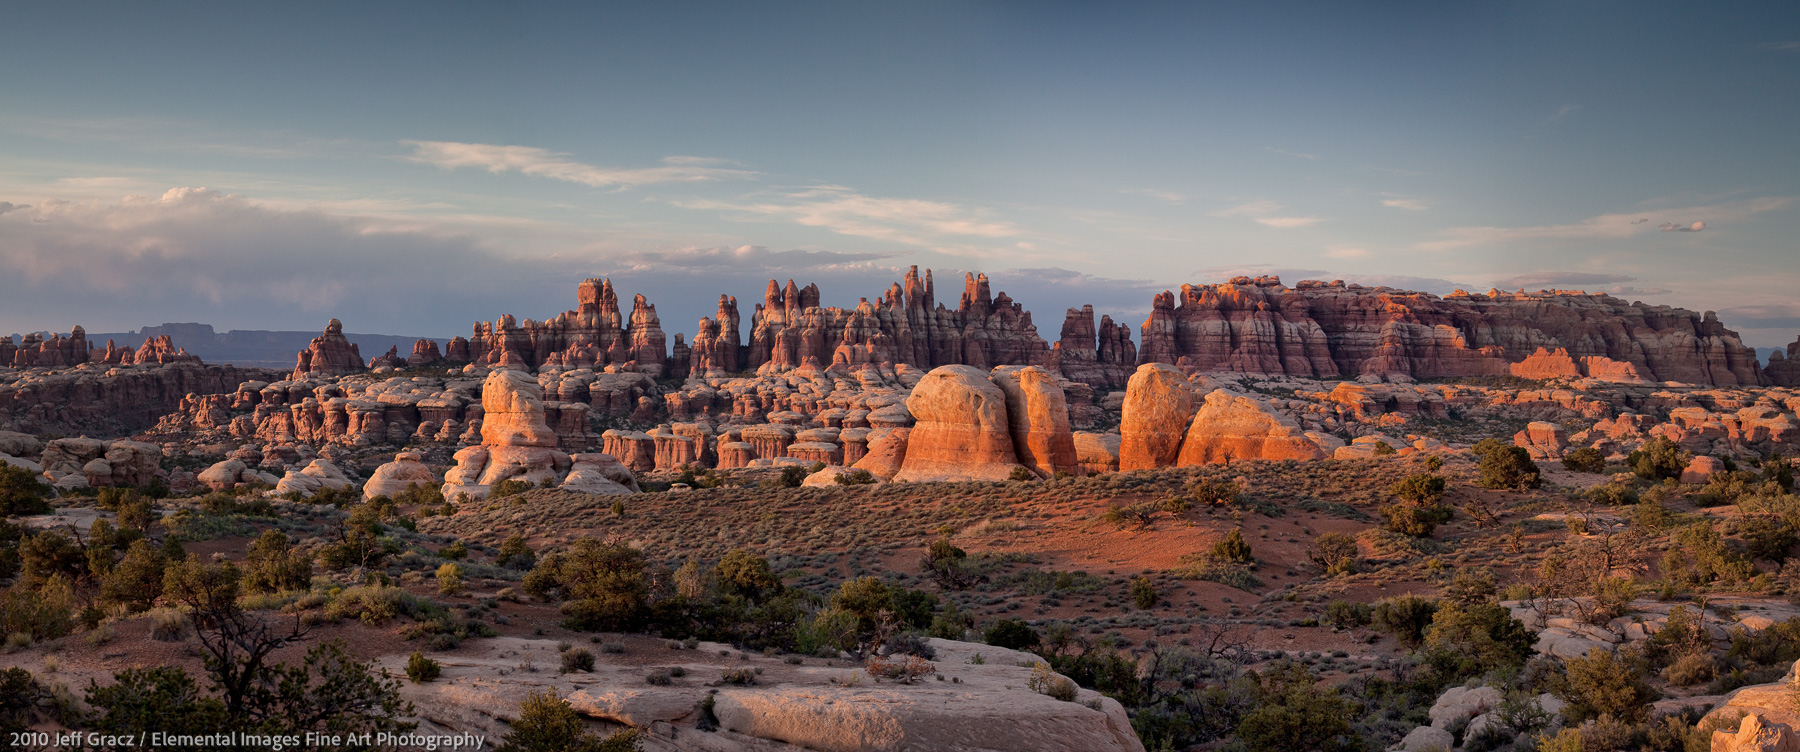 The Needles from Butler Flat | Canyonlands National Park | UT | USA - © 2010 Jeff Gracz / Elemental Images Fine Art Photography - All Rights Reserved Worldwide